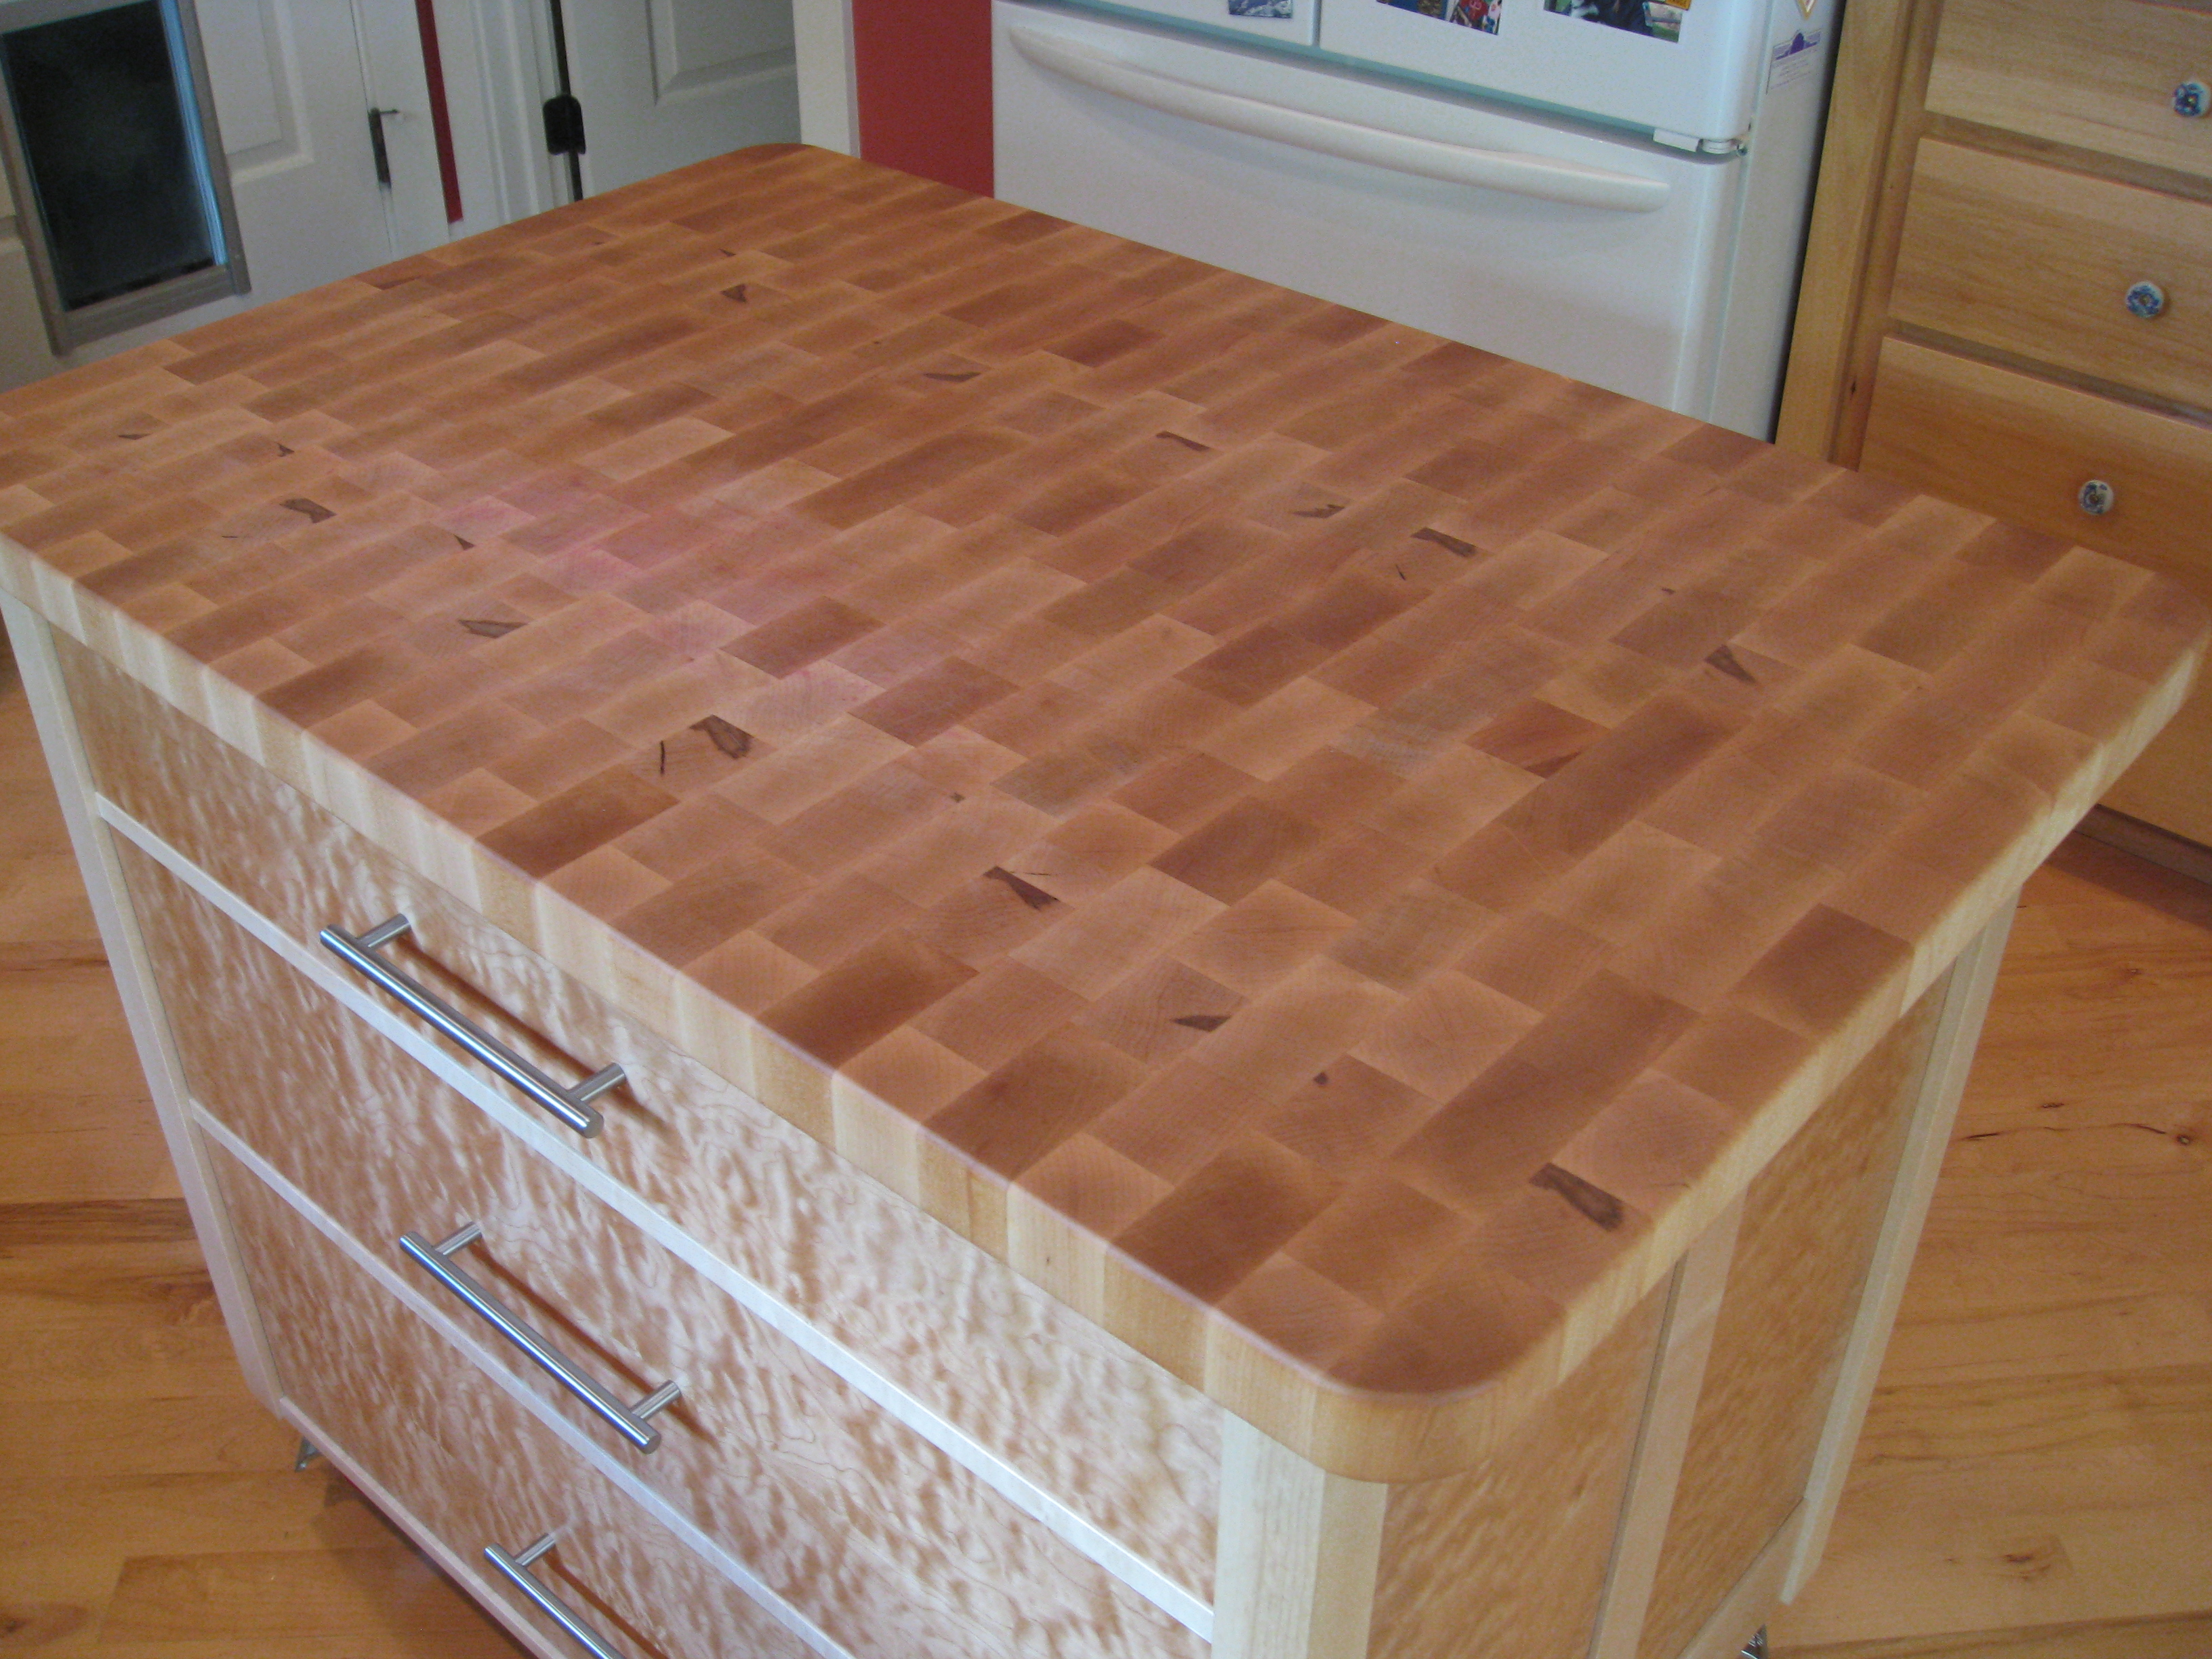 How to build a butcher block - Butcher Block Counter Top